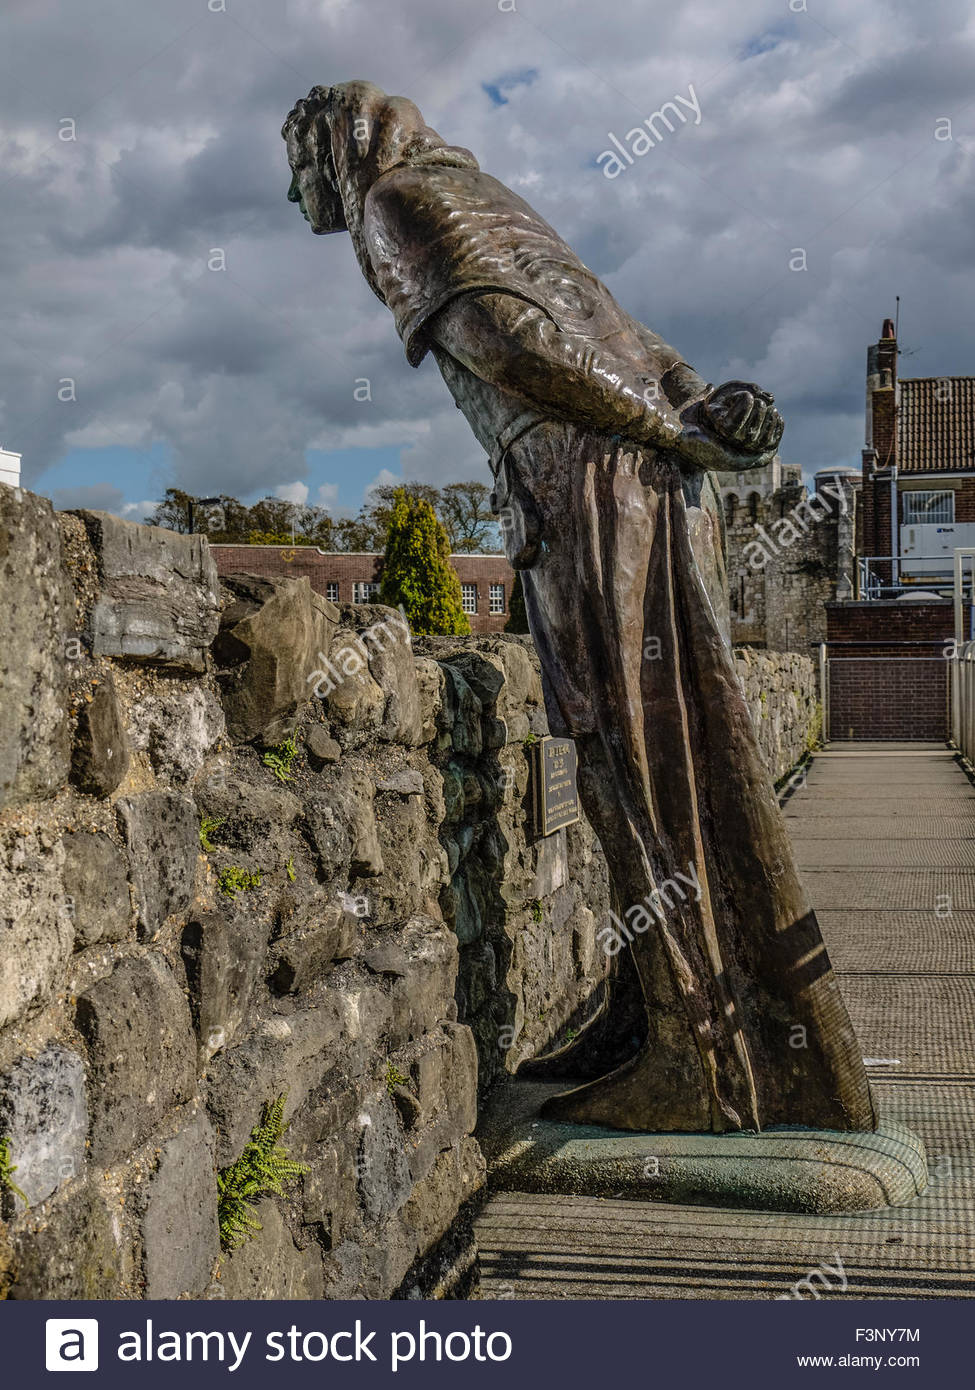 Southampton Hampshire England Oct 2015  John Lee Fleming 1295-1336 Mayor of Southampton Sculpture by Anthony Griffiths - Stock Image